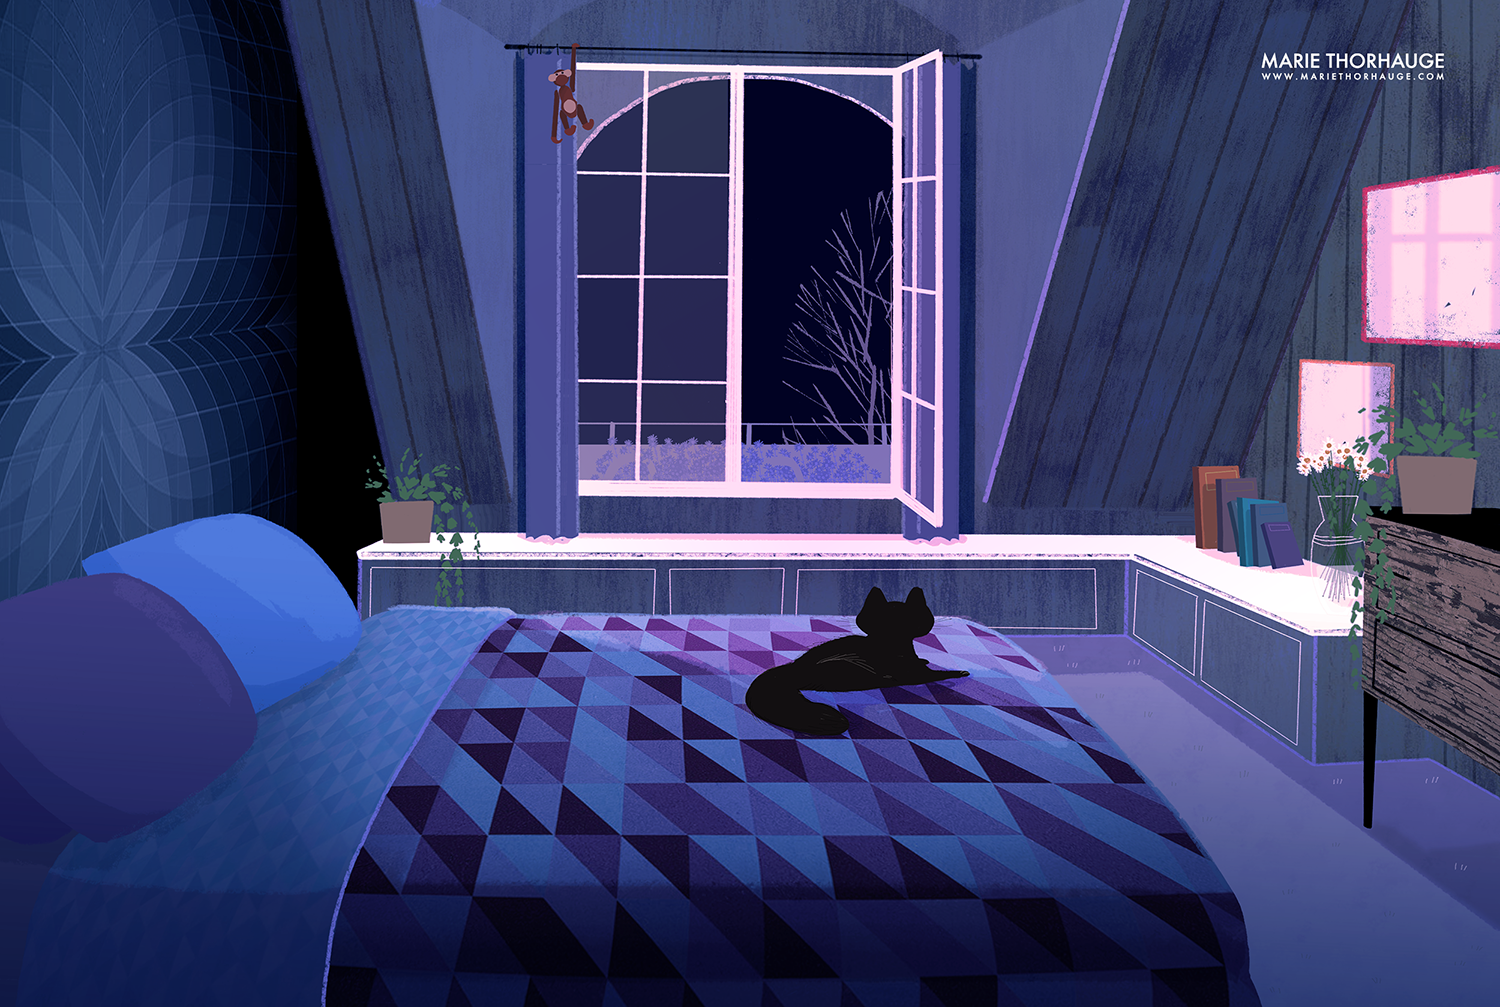 2013_Marie-Thorhauge_bedroom-night.png